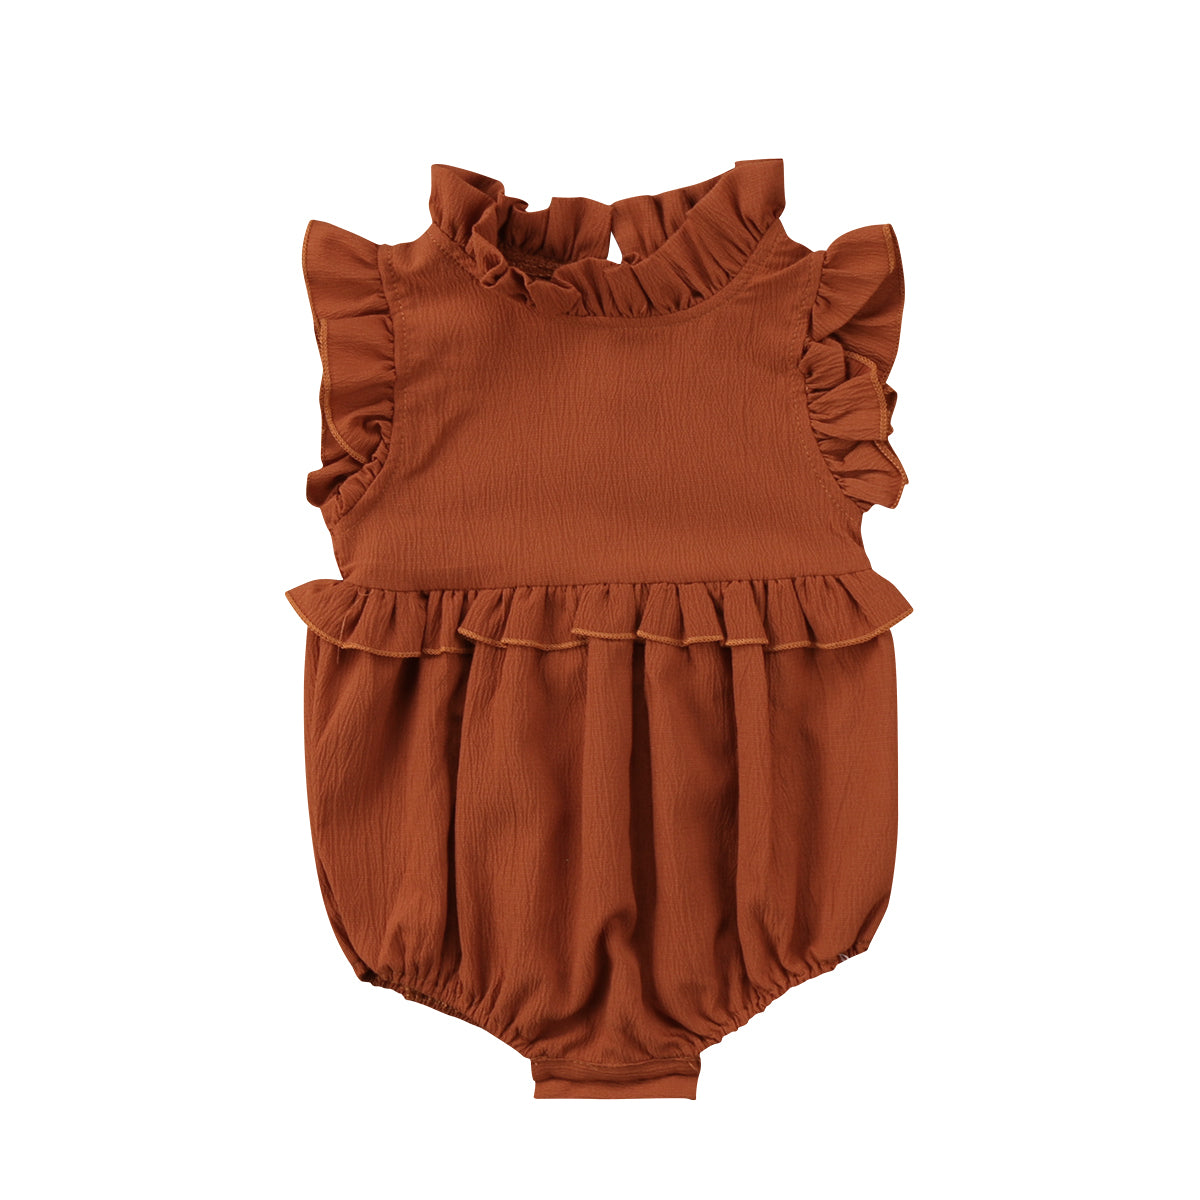 Sleeveless Ruffles Romper Jumpsuit Outfits(for Summer)